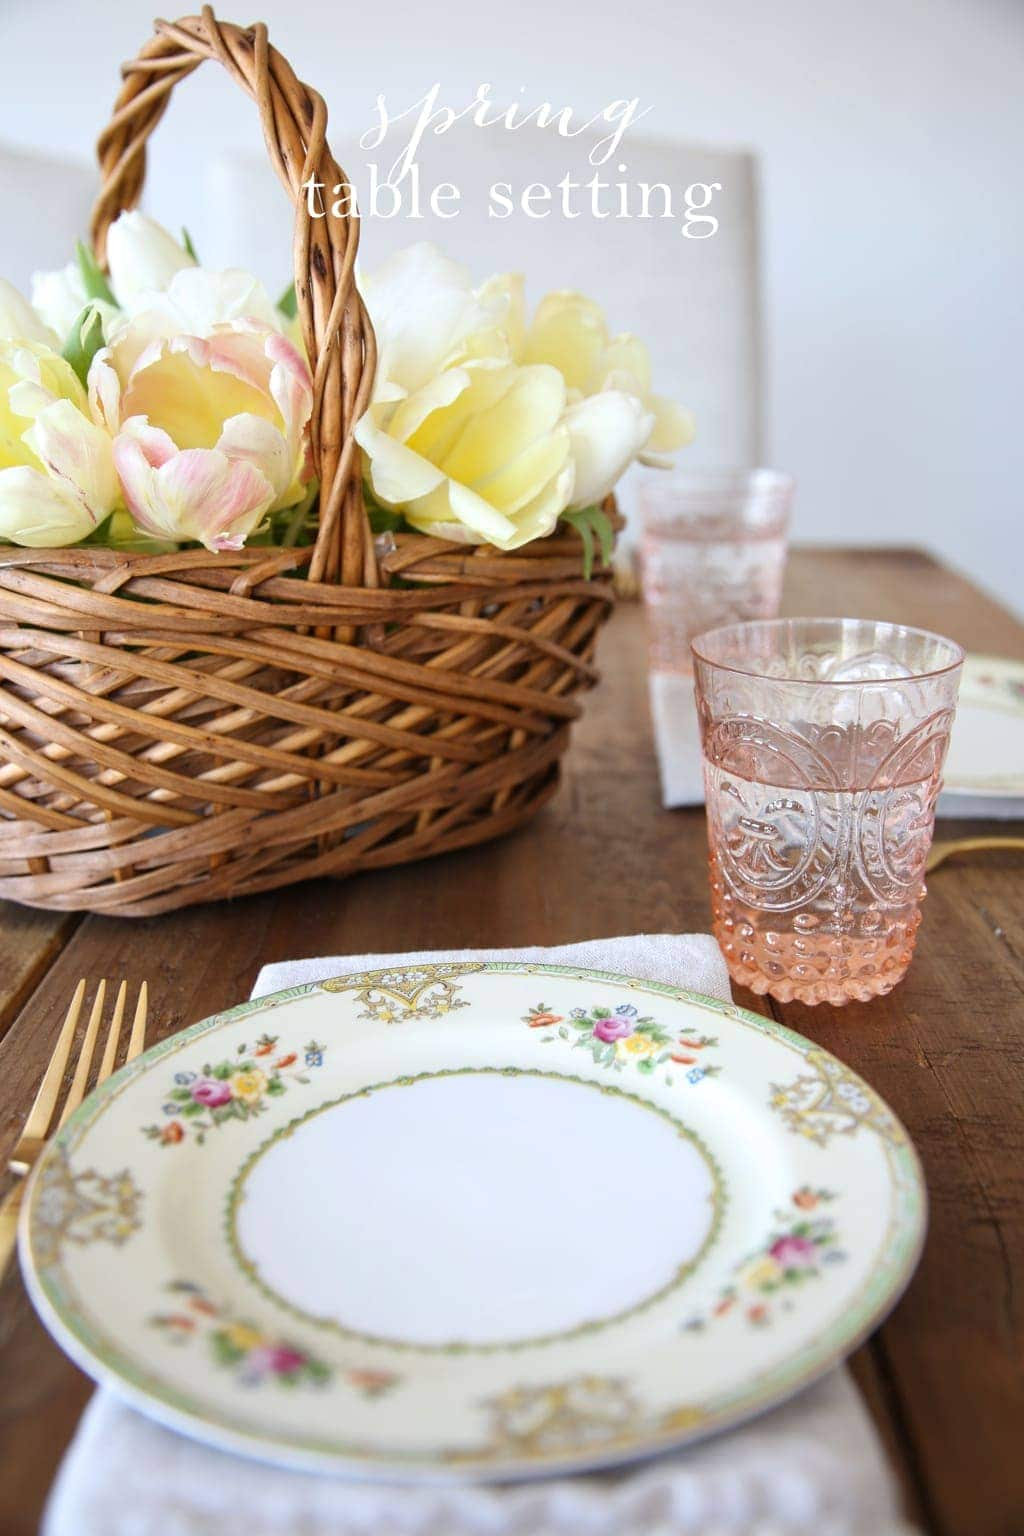 Simple spring table setting